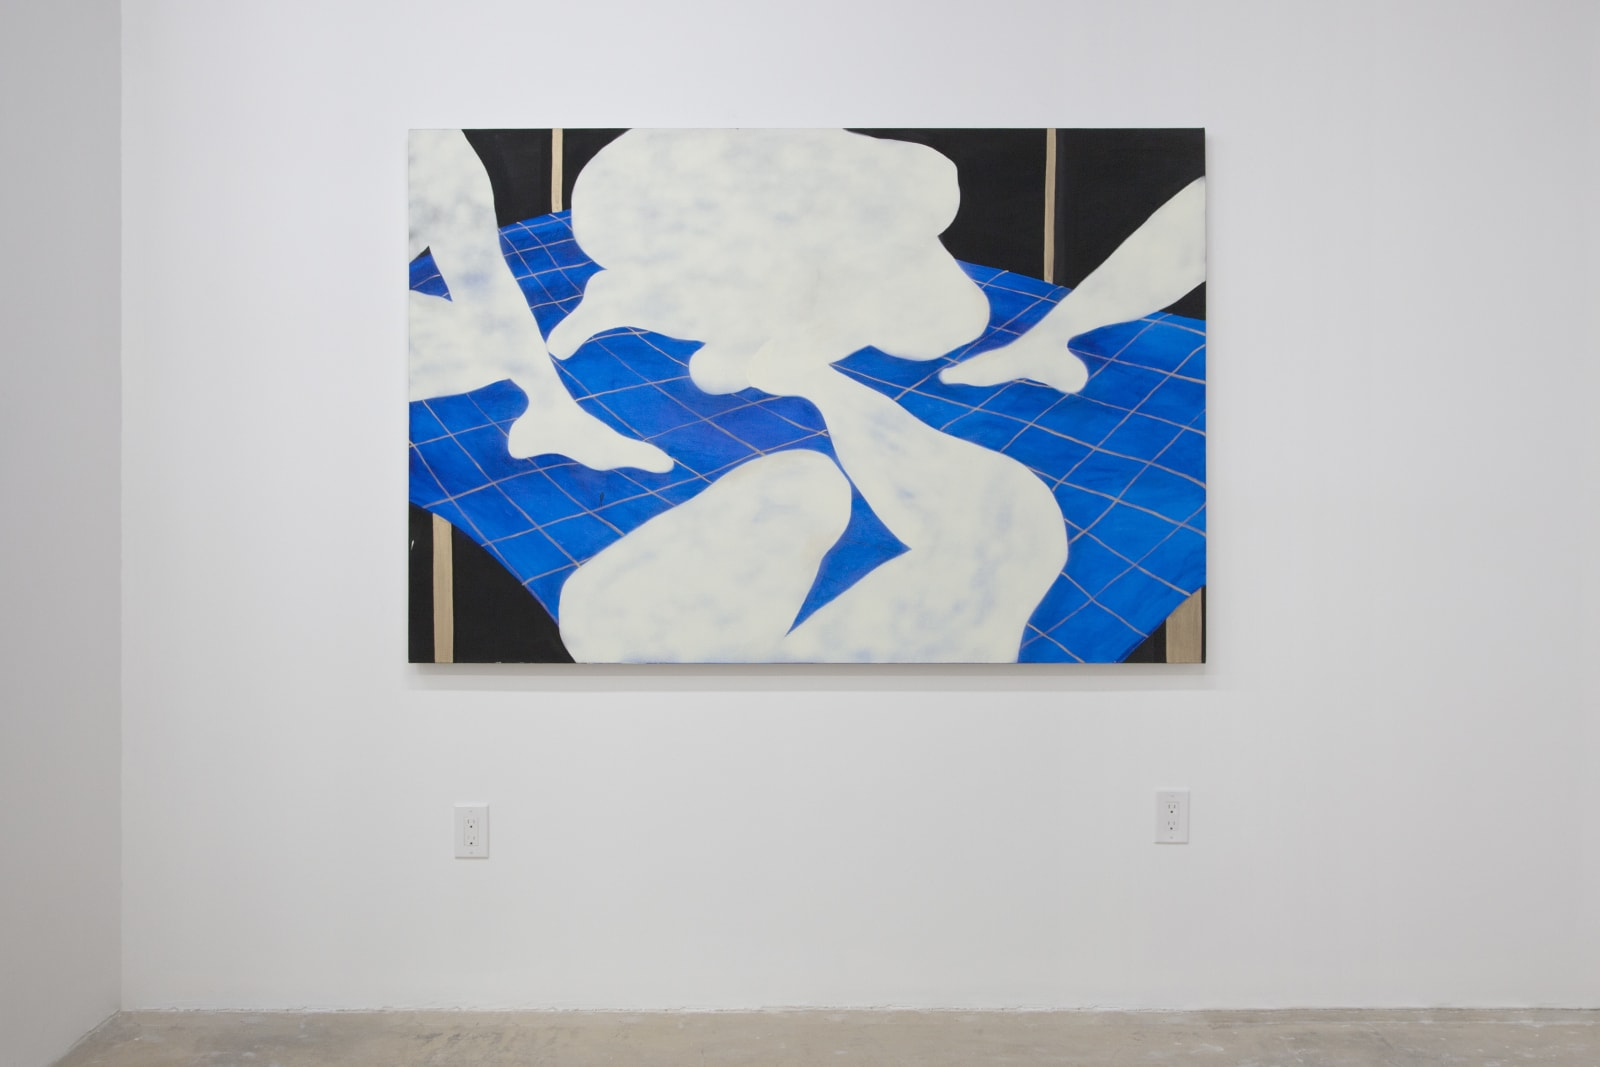 Installation View, A Body of Her Own.